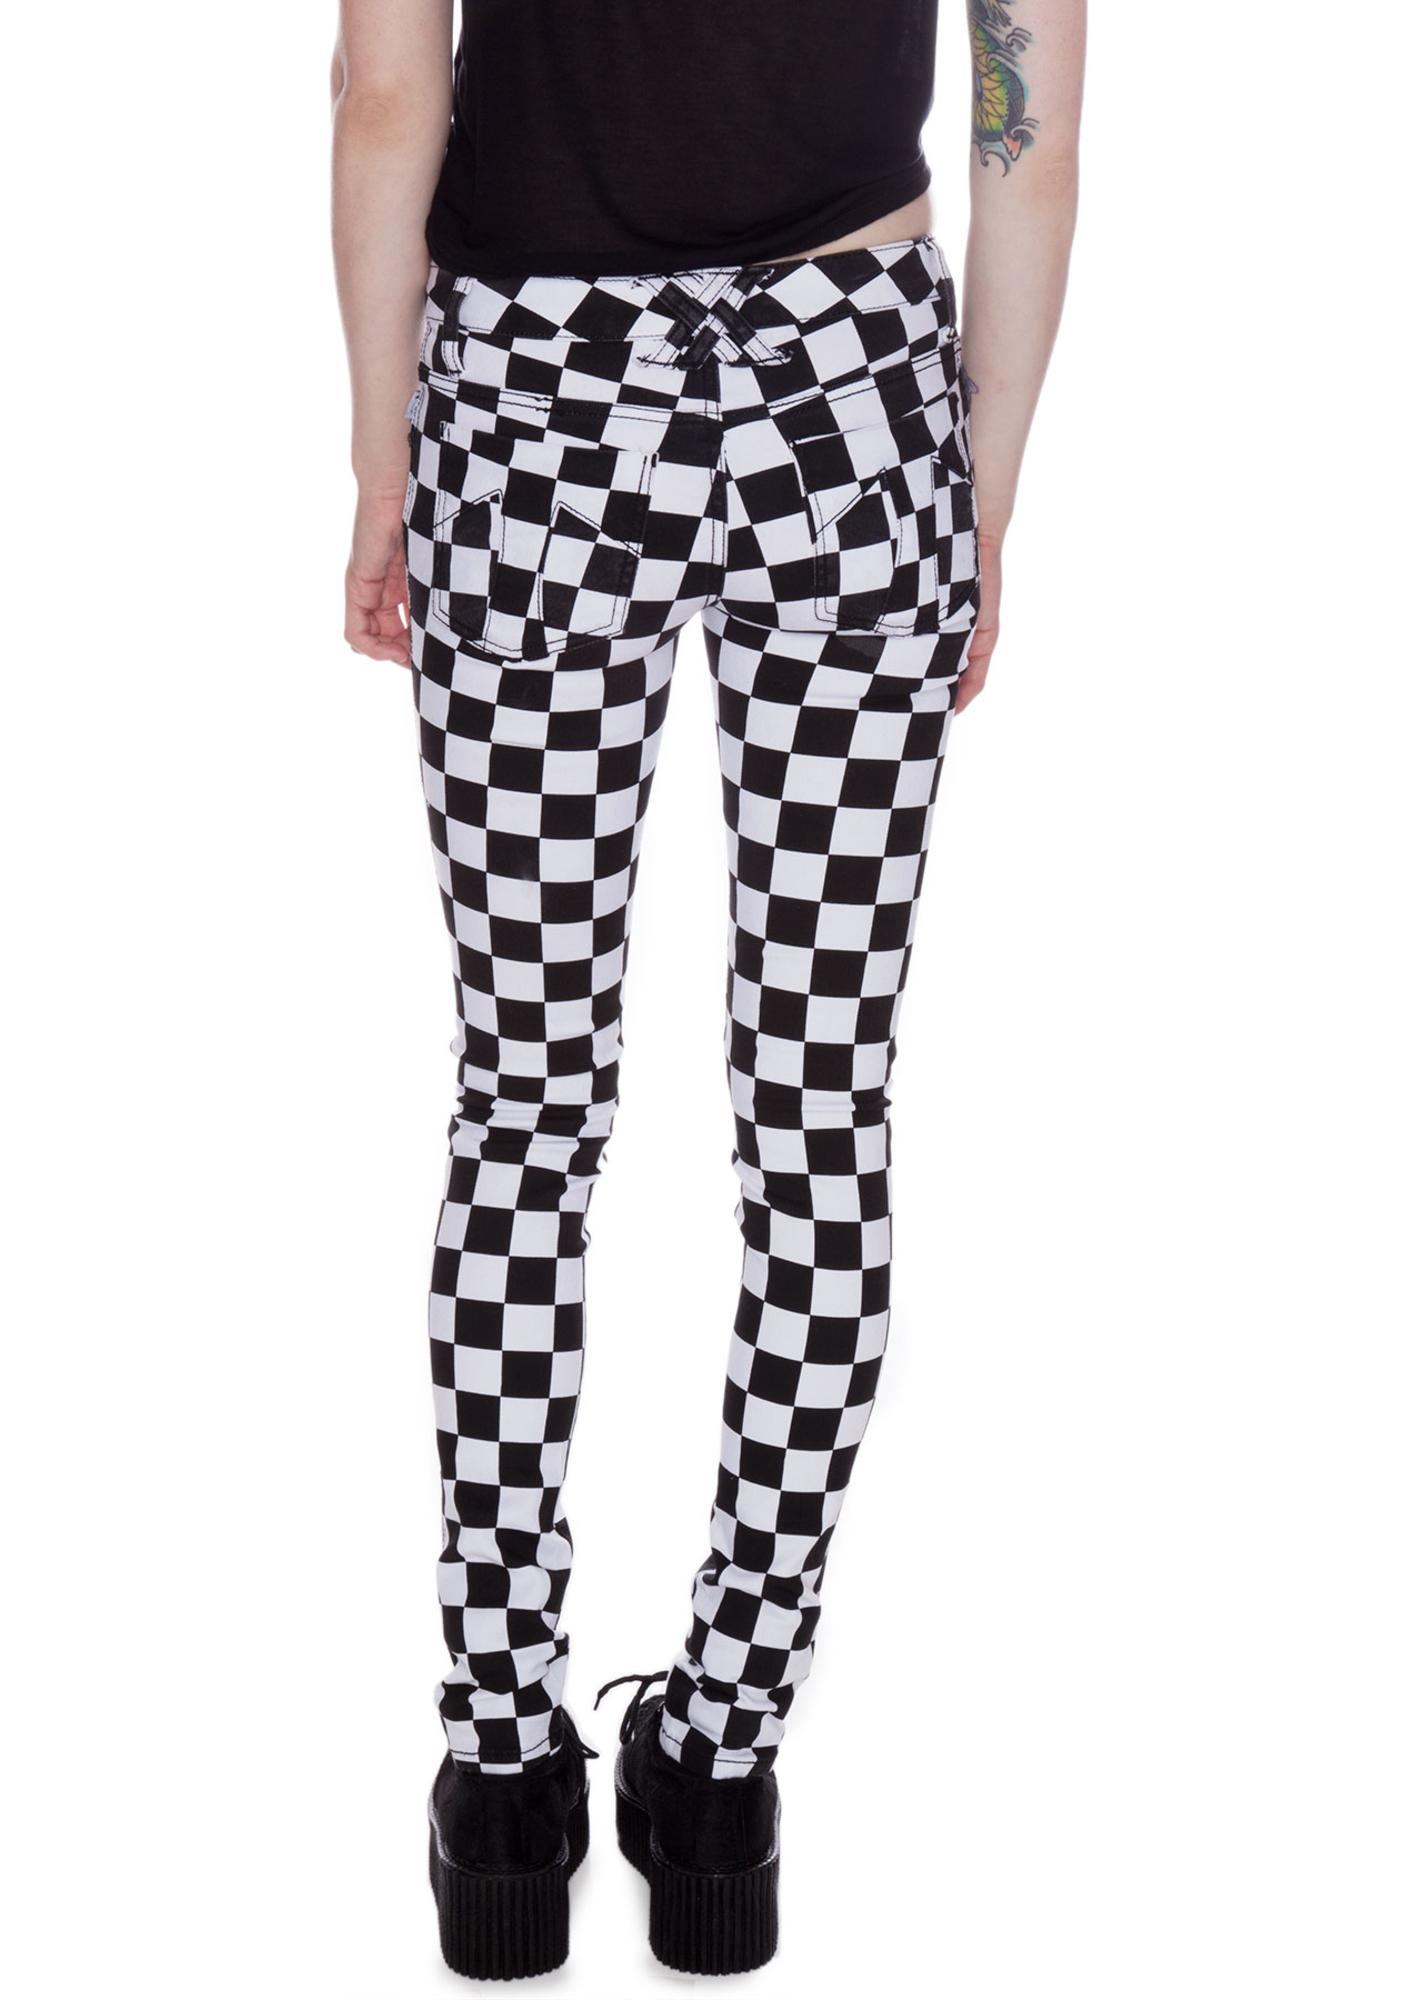 Tripp NYC Dyed Checkered Jeans